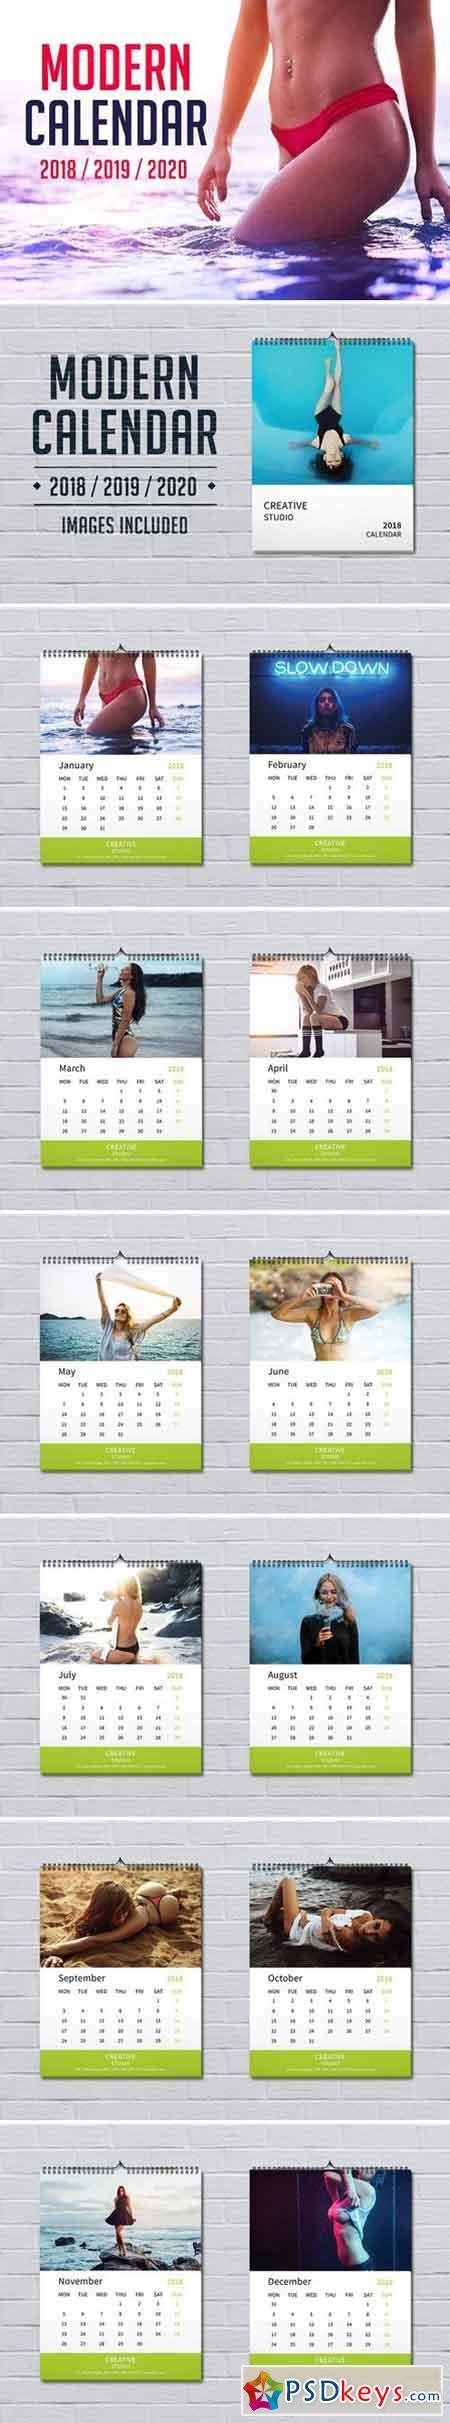 Calendar 2018 Indd Indesign 187 Page 2 187 Free Photoshop Vector Stock